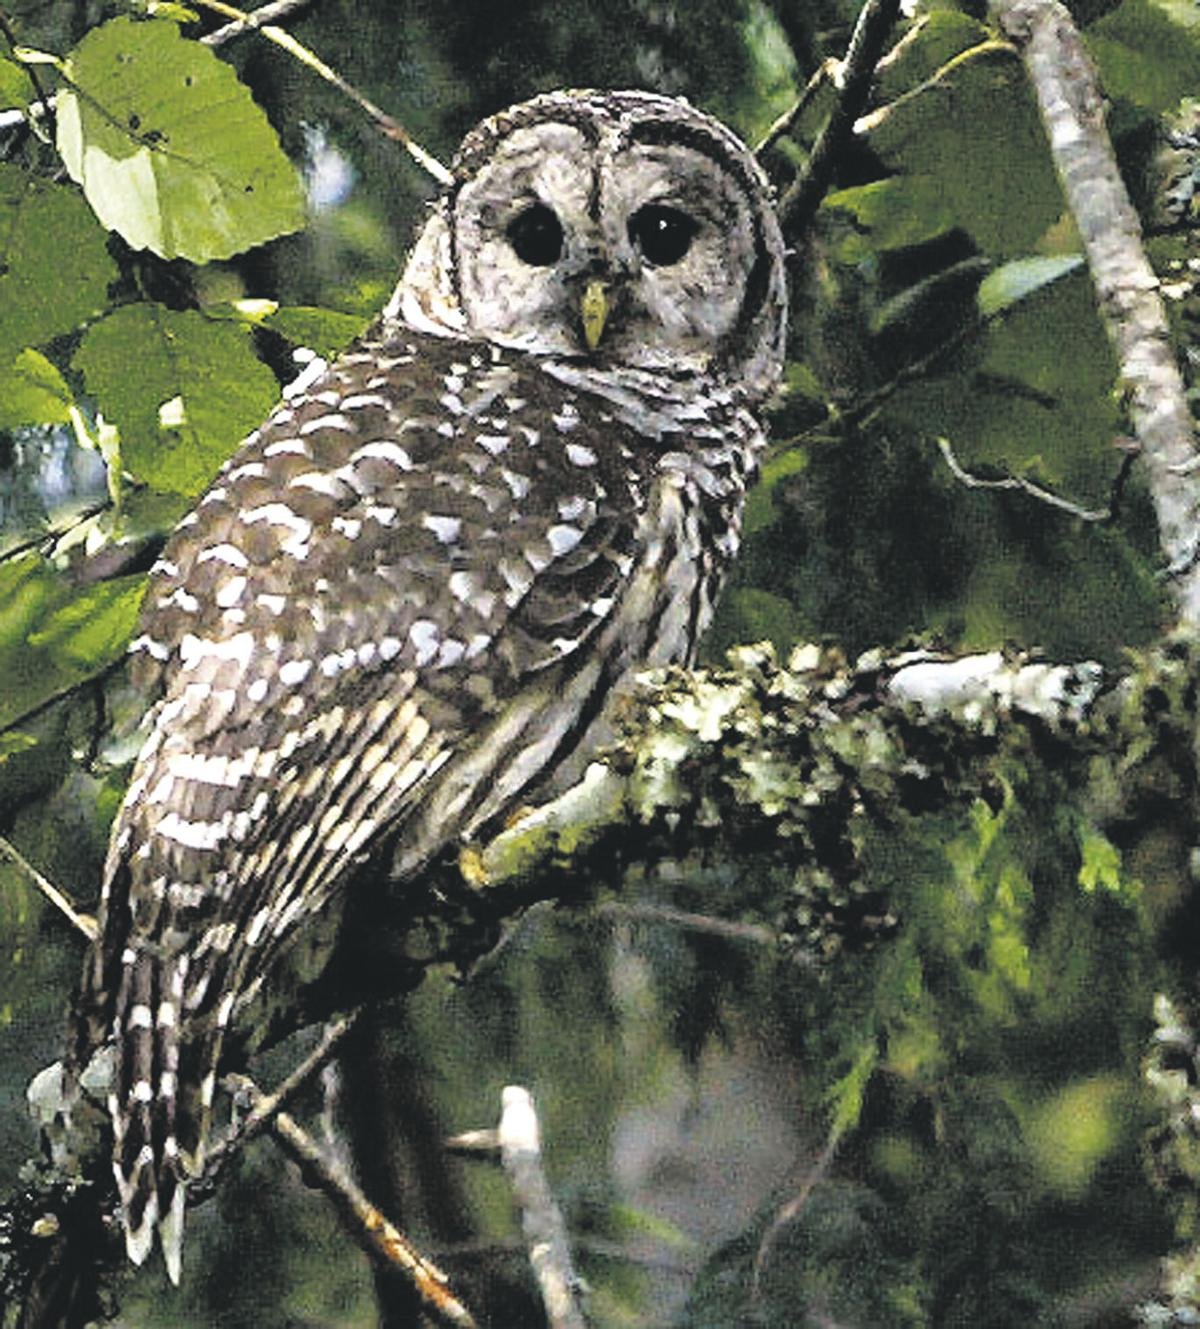 Feds consider taking out aggressive barred owls